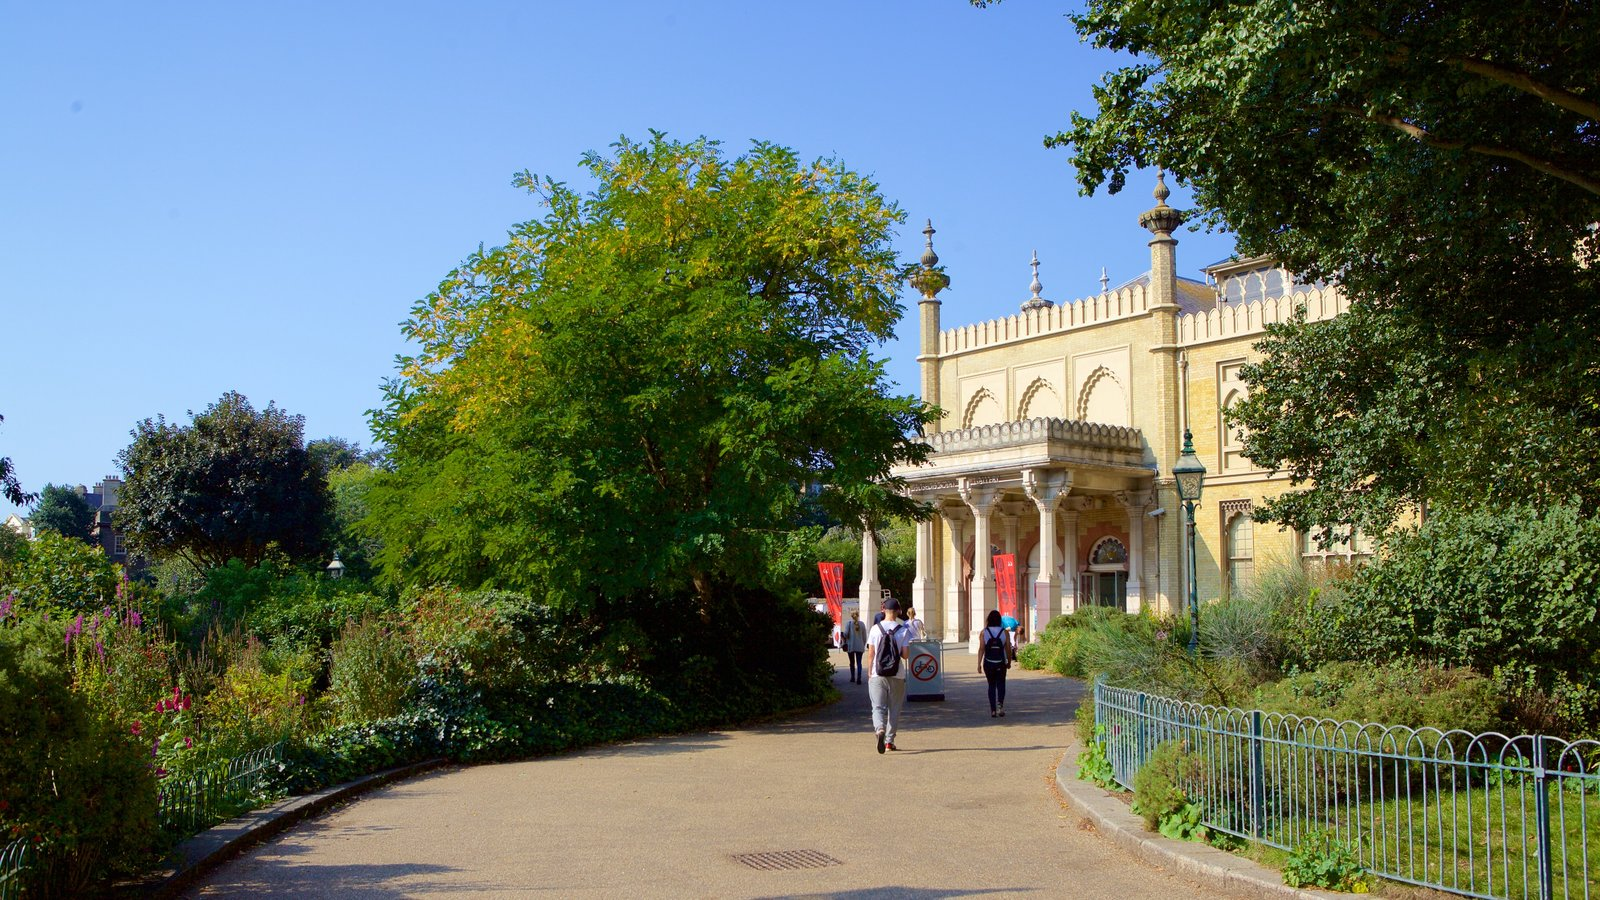 Gardens & Parks Pictures: View Images of Brighton